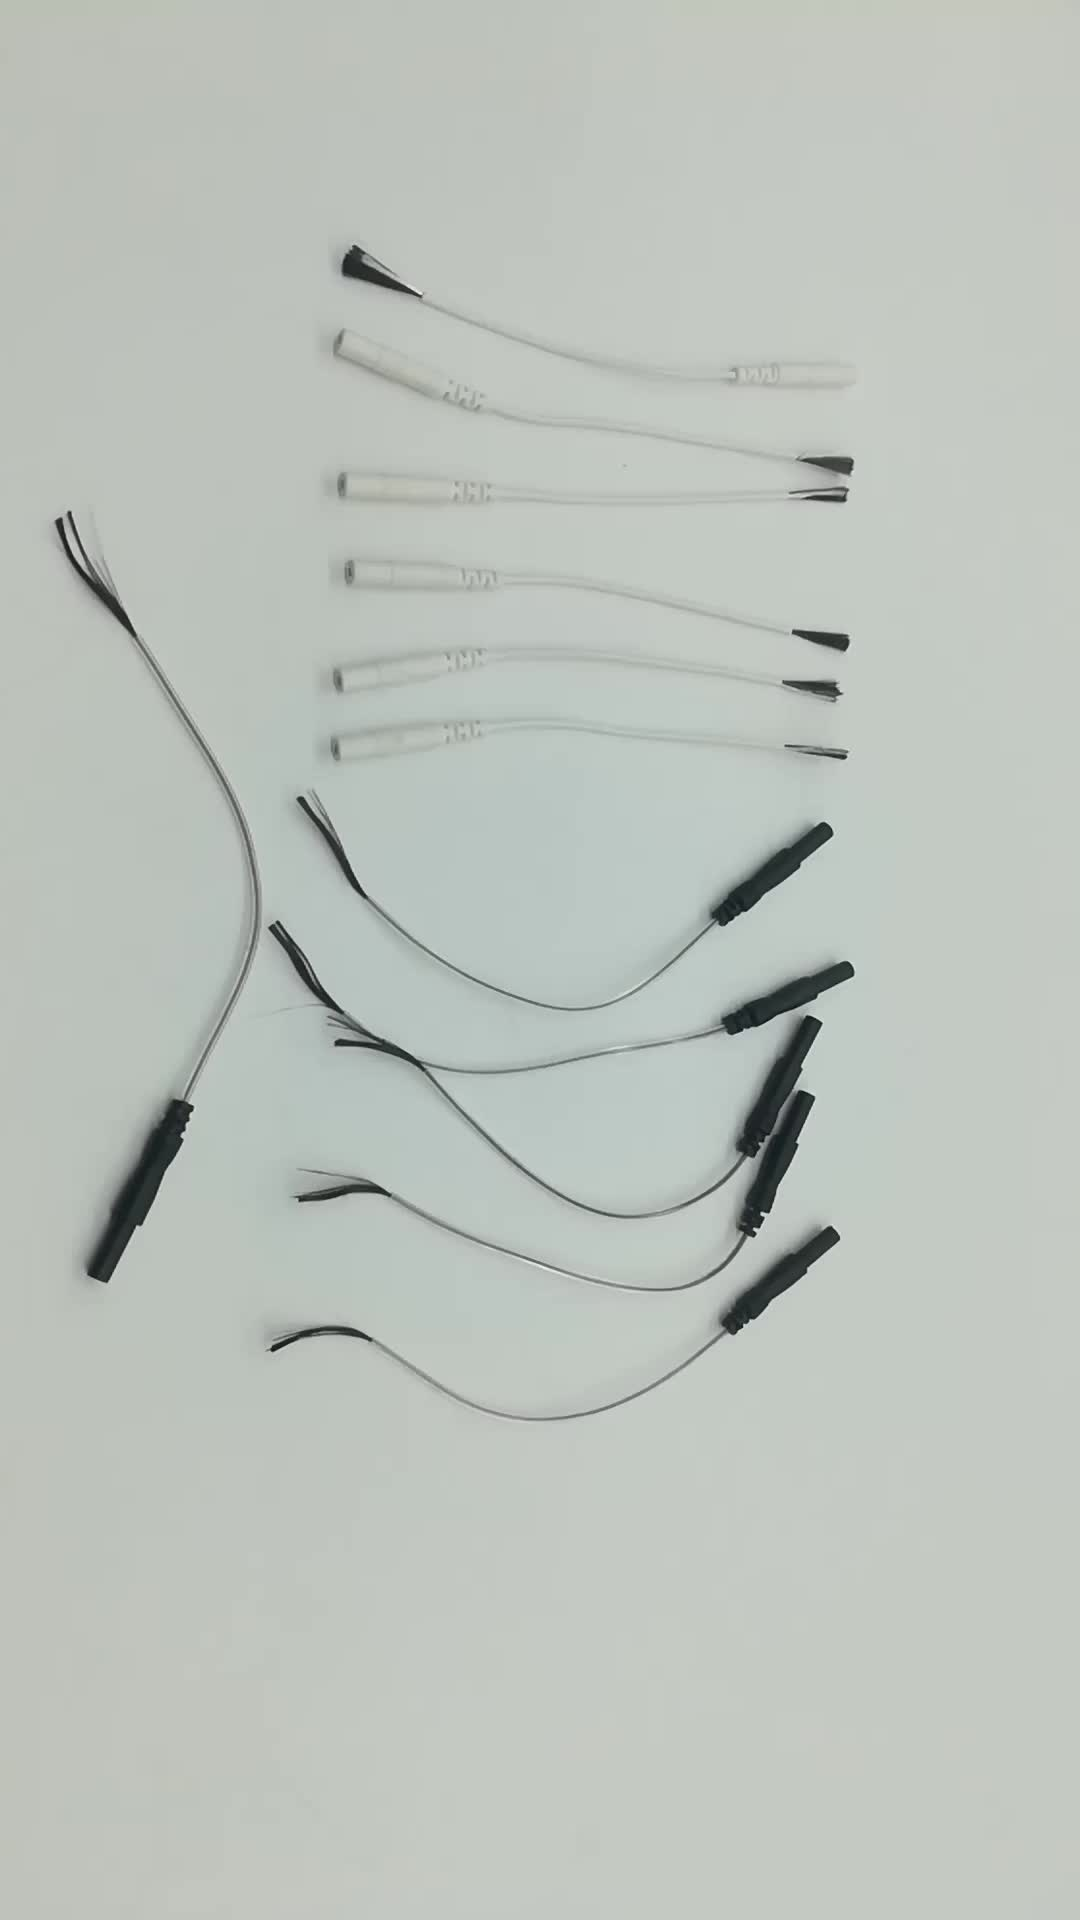 Custom Medical Tens Unit Electrodes Leads Wire Cable With